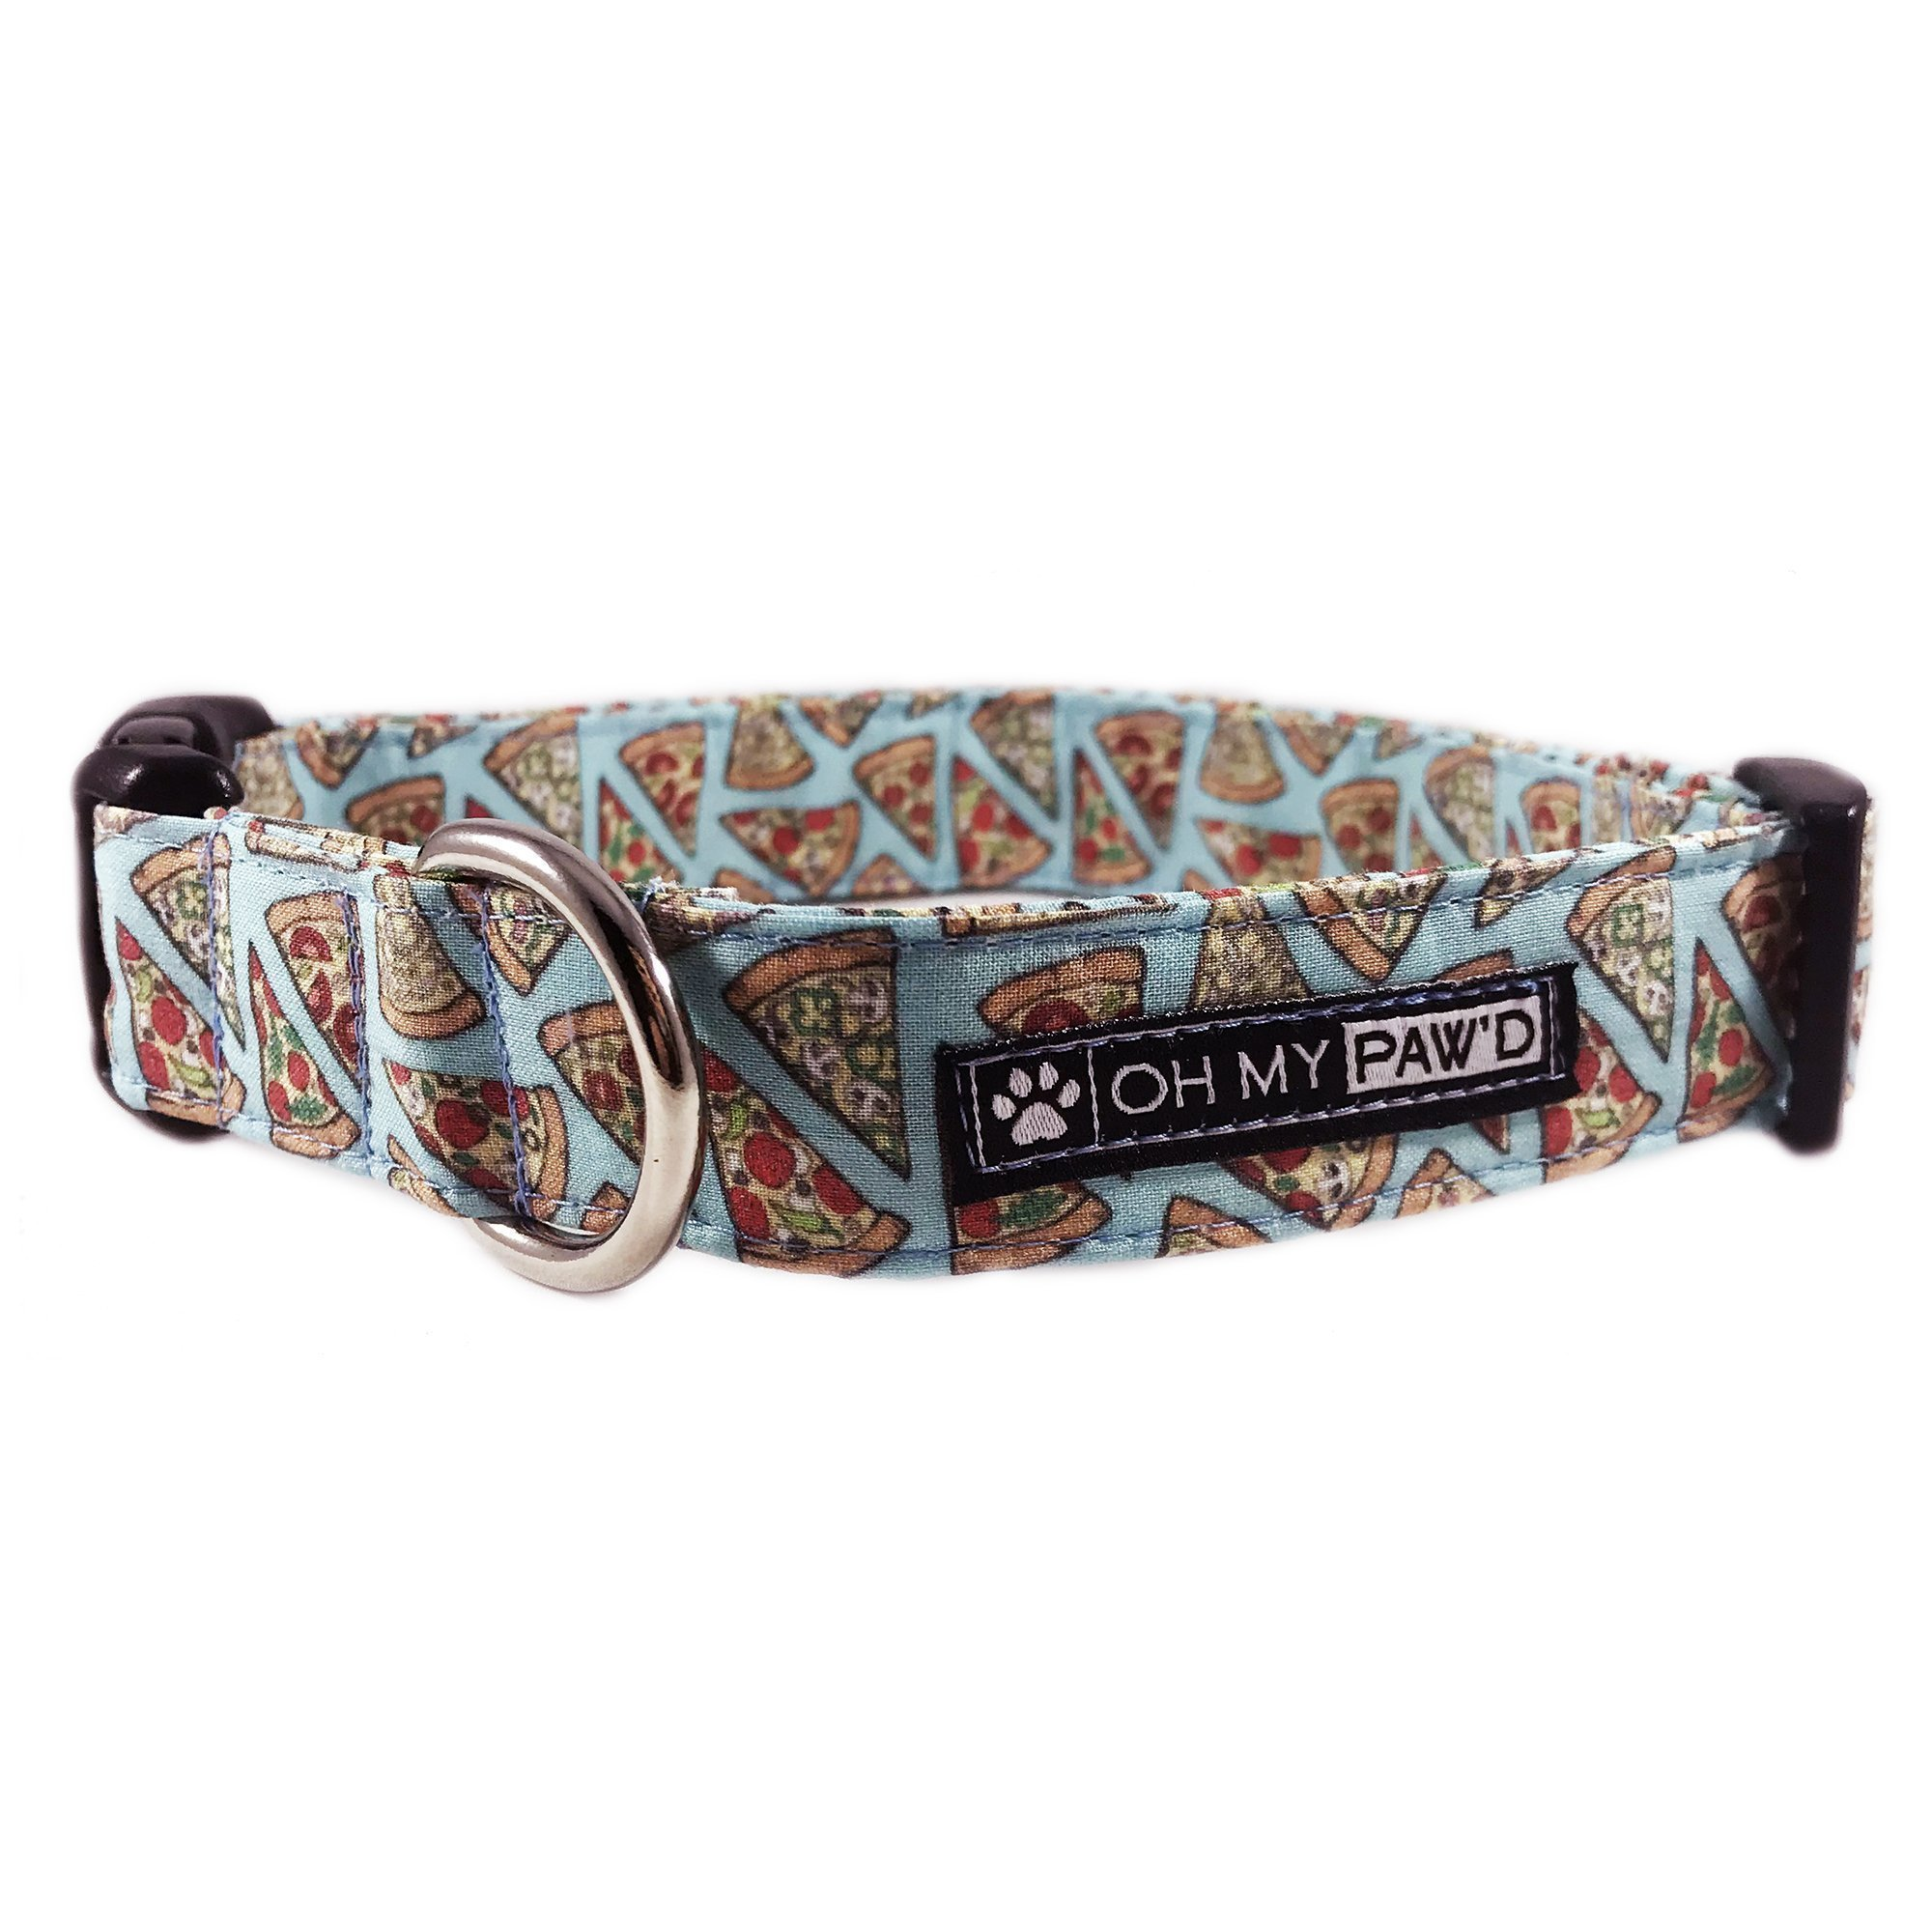 Pepperoni Pizza Dog or Cat Collar for Pets in Size Medium with Extra Width 1'' Wide long 13-17'' Long by Oh My Paw'd